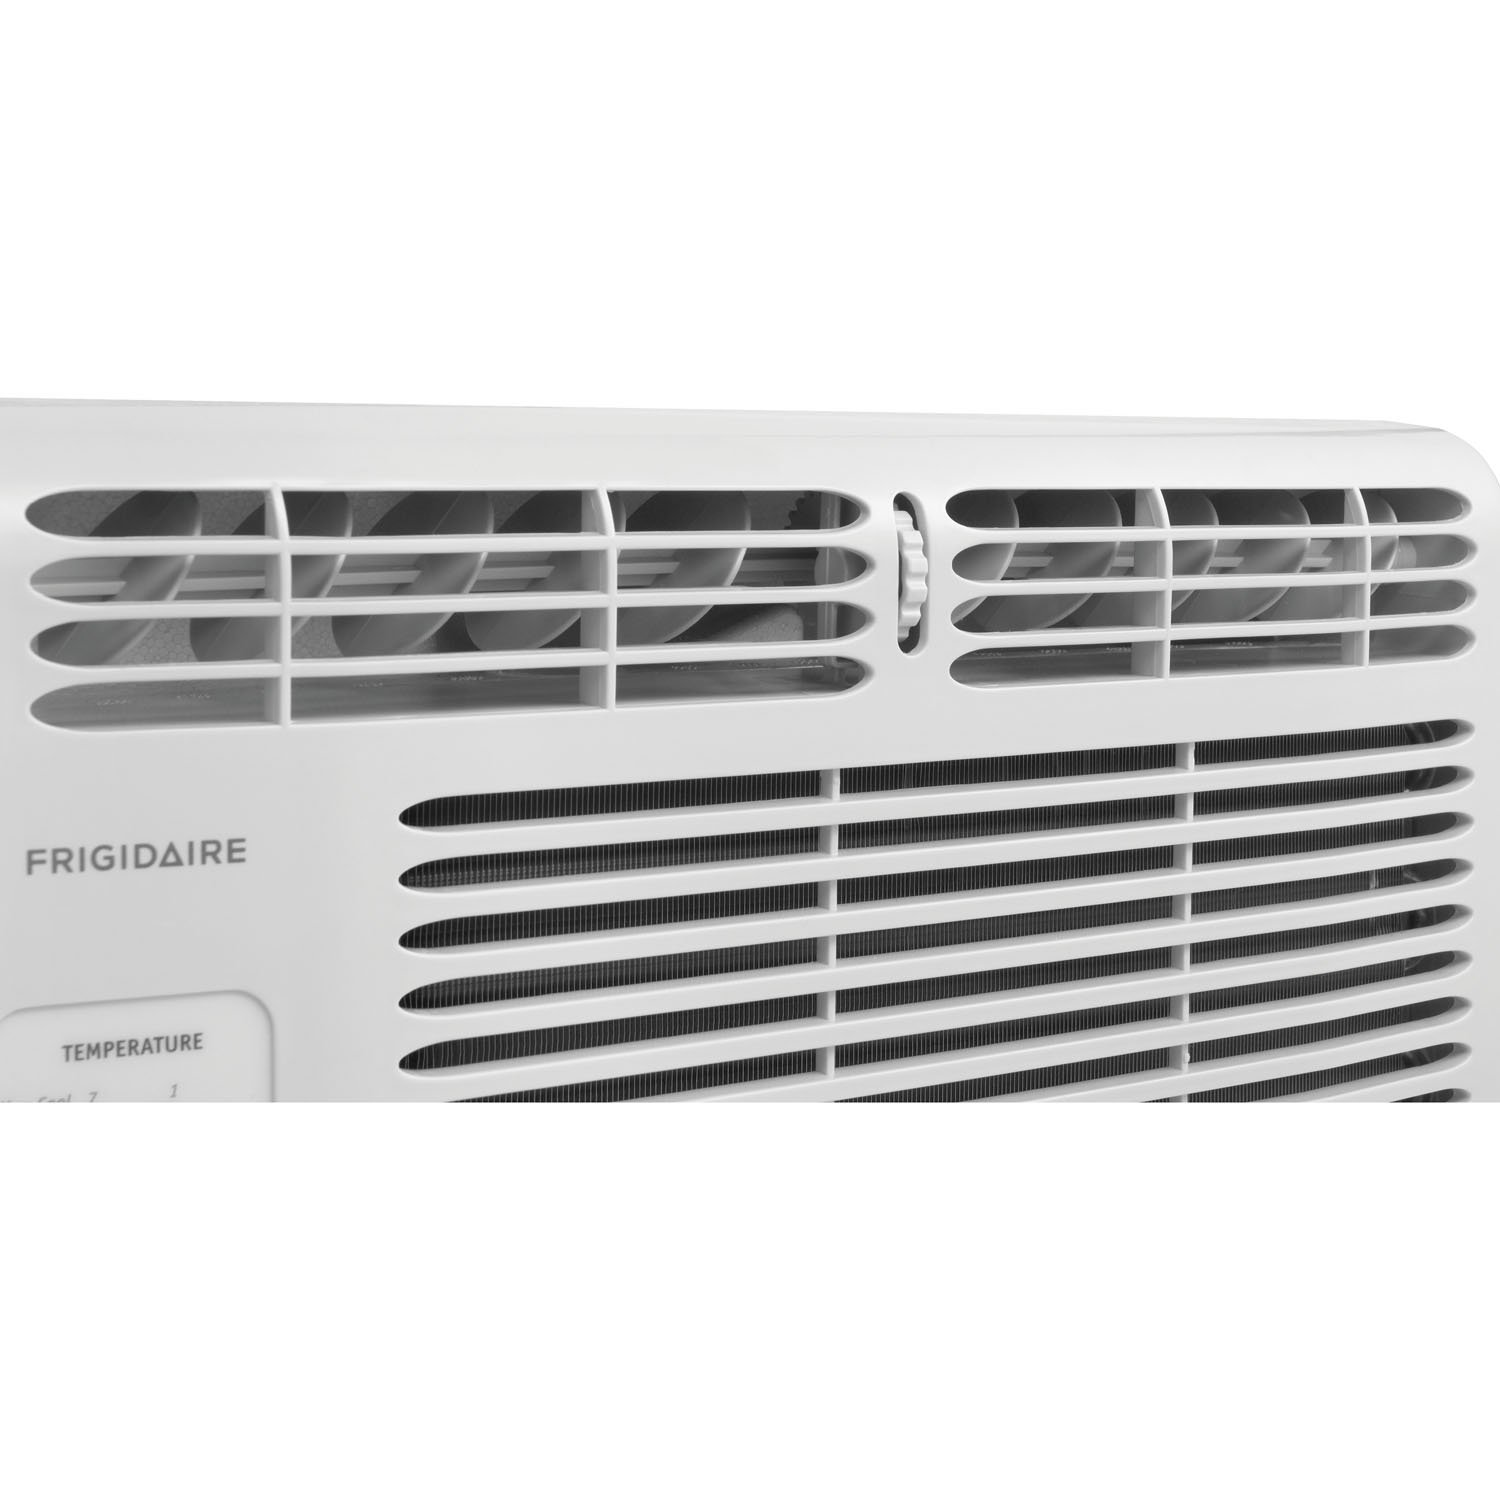 Frigidaire FFRA0511R1 5, 000 BTU 115V Window-Mounted Mini-Compact Air Conditioner with Mechanical Controls by Frigidaire (Image #10)